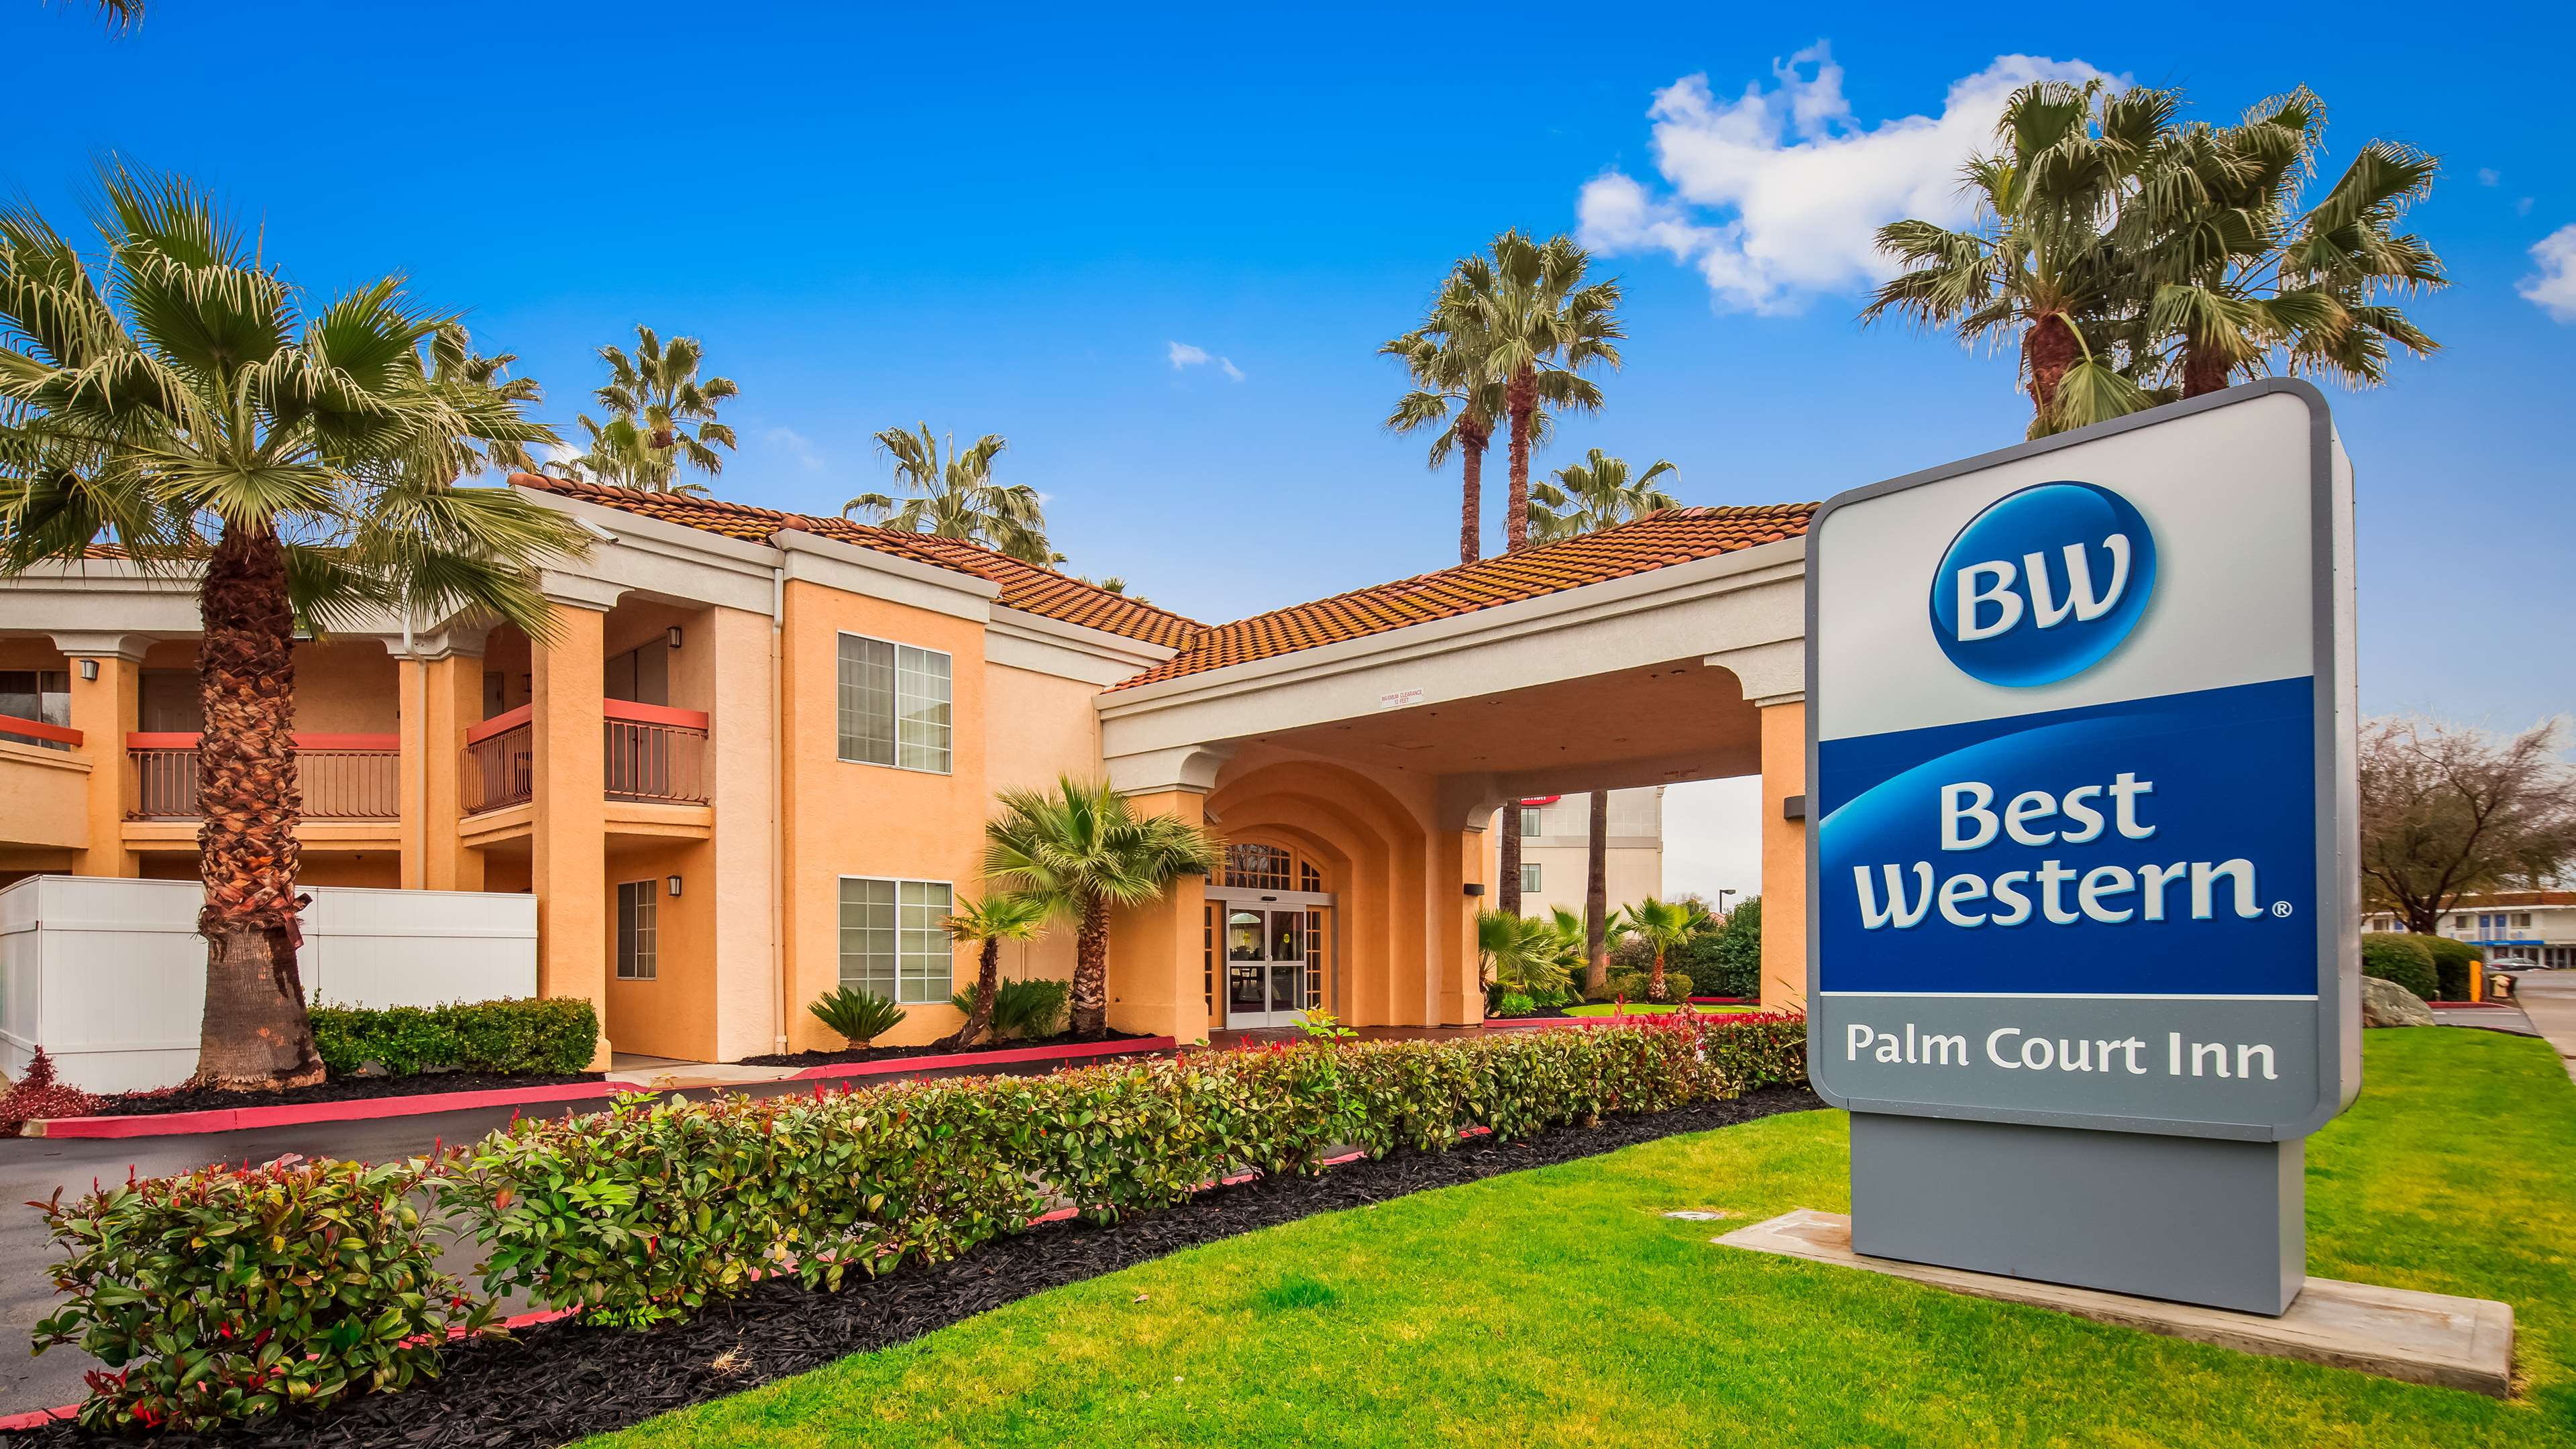 Hotels And Motels In Modesto Ca